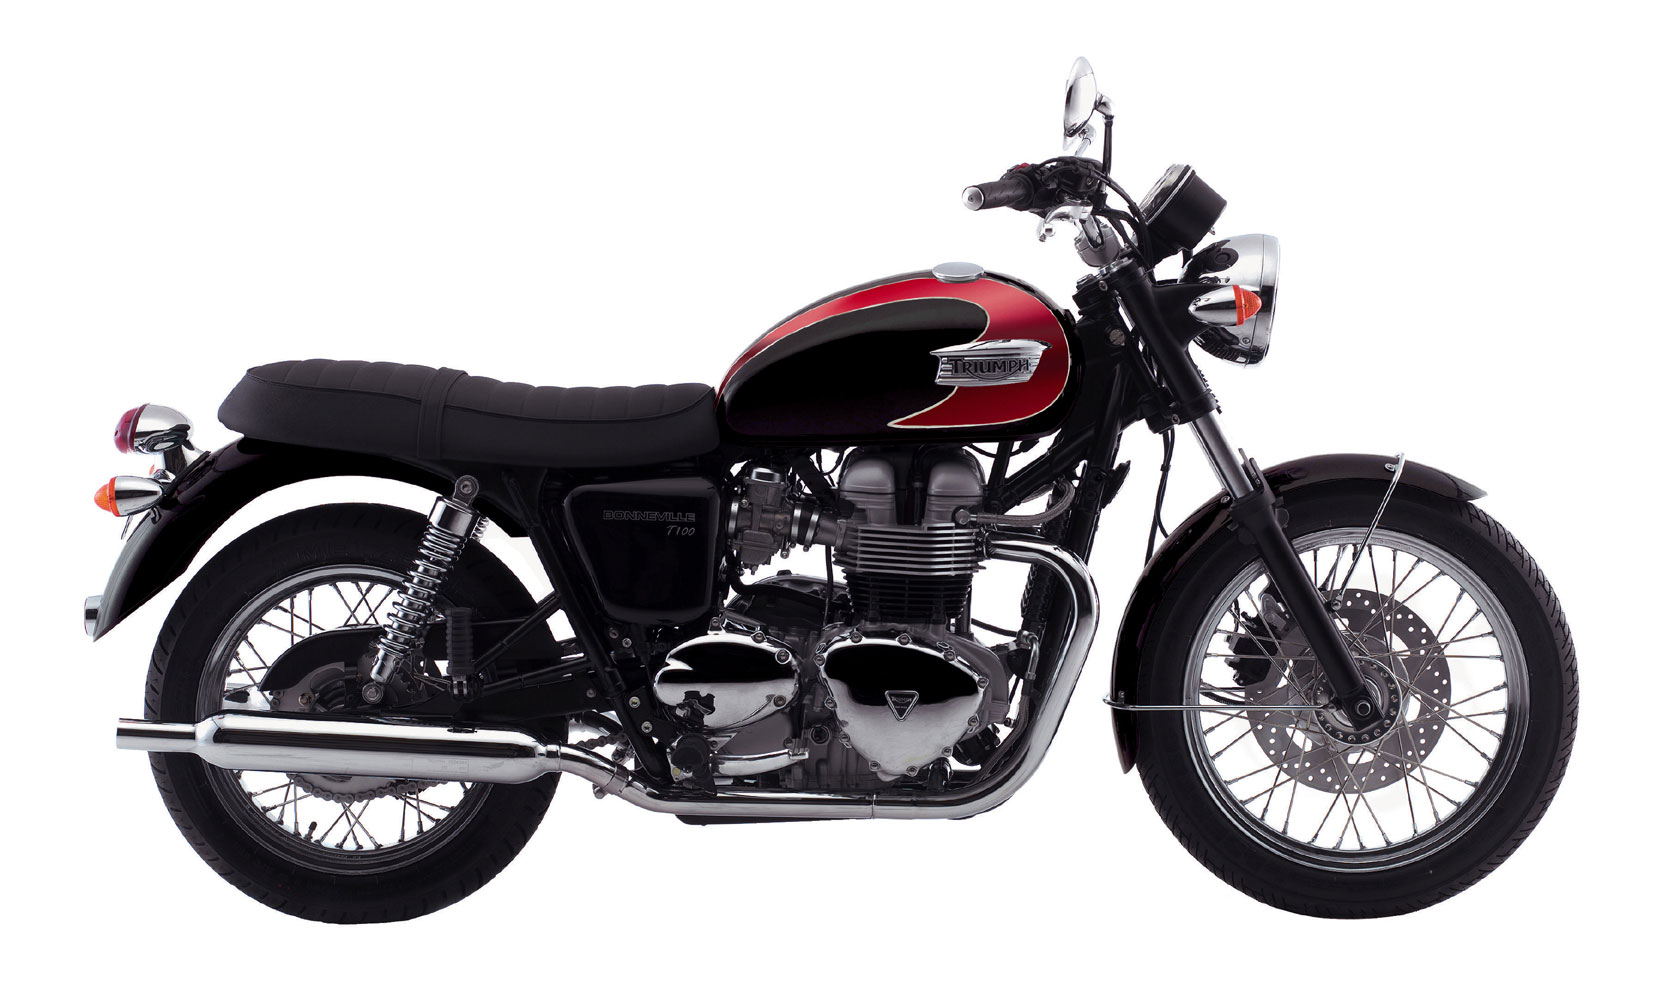 triumph bonneville t100 specs 2007 2008 autoevolution. Black Bedroom Furniture Sets. Home Design Ideas